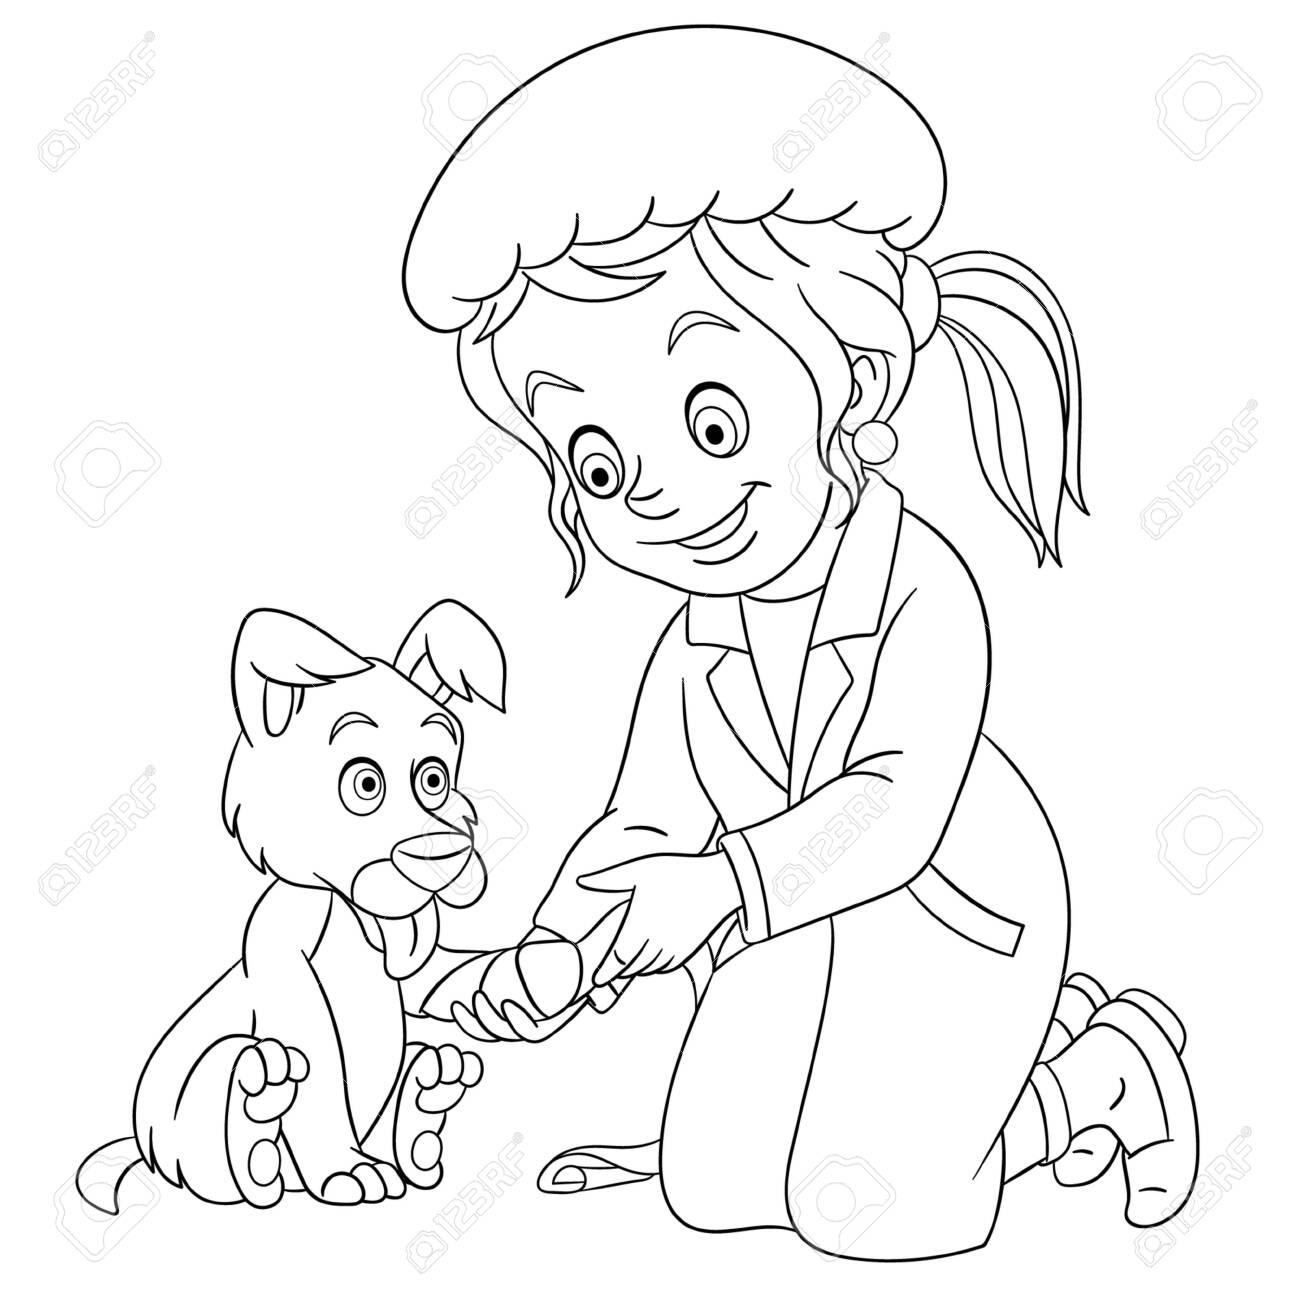 Coloring Page Coloring Picture Of Cartoon Vet Girl Young Veterinarian Royalty Free Cliparts Vectors And Stock Illustration Image 138736481